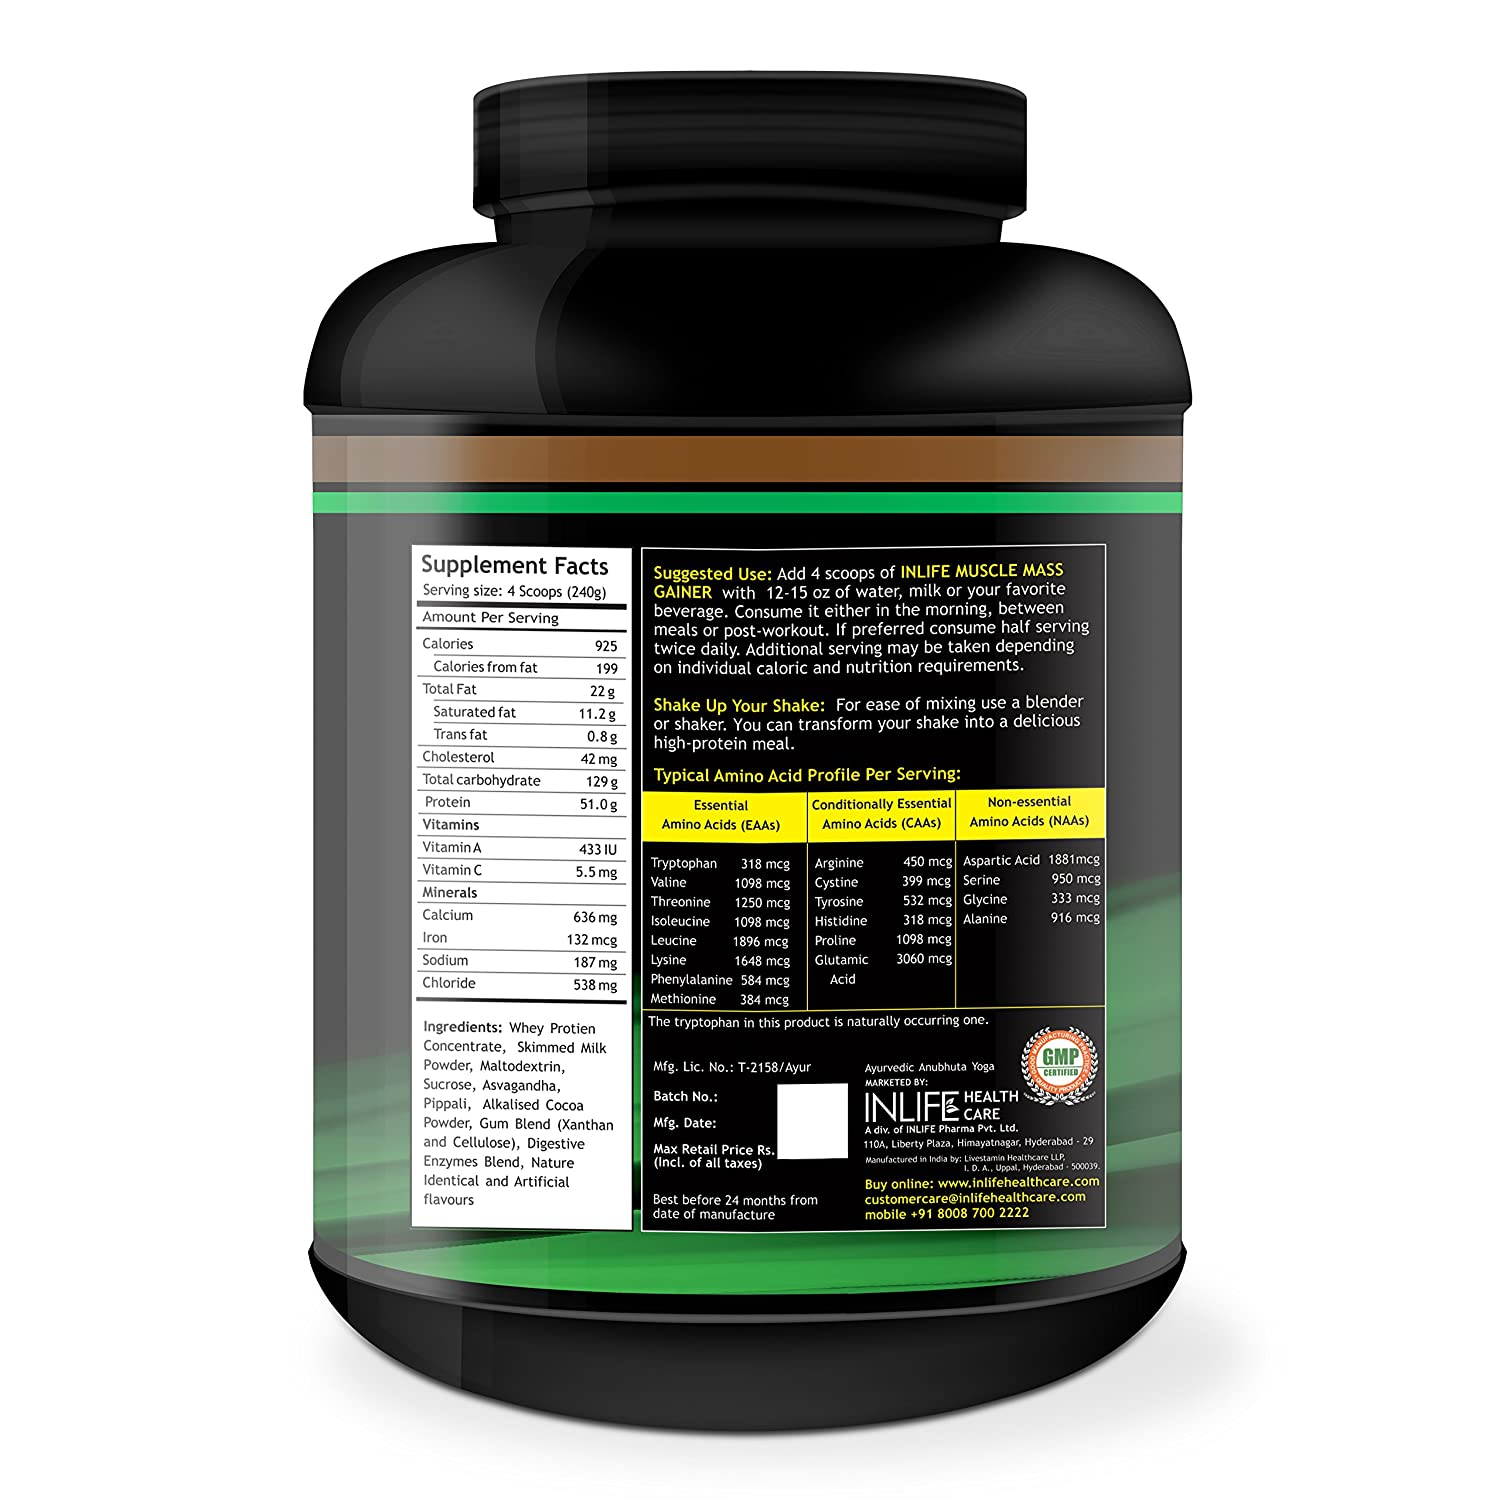 Buy Inlife Muscle Mass Gainer Protein Supplement - 5lbs